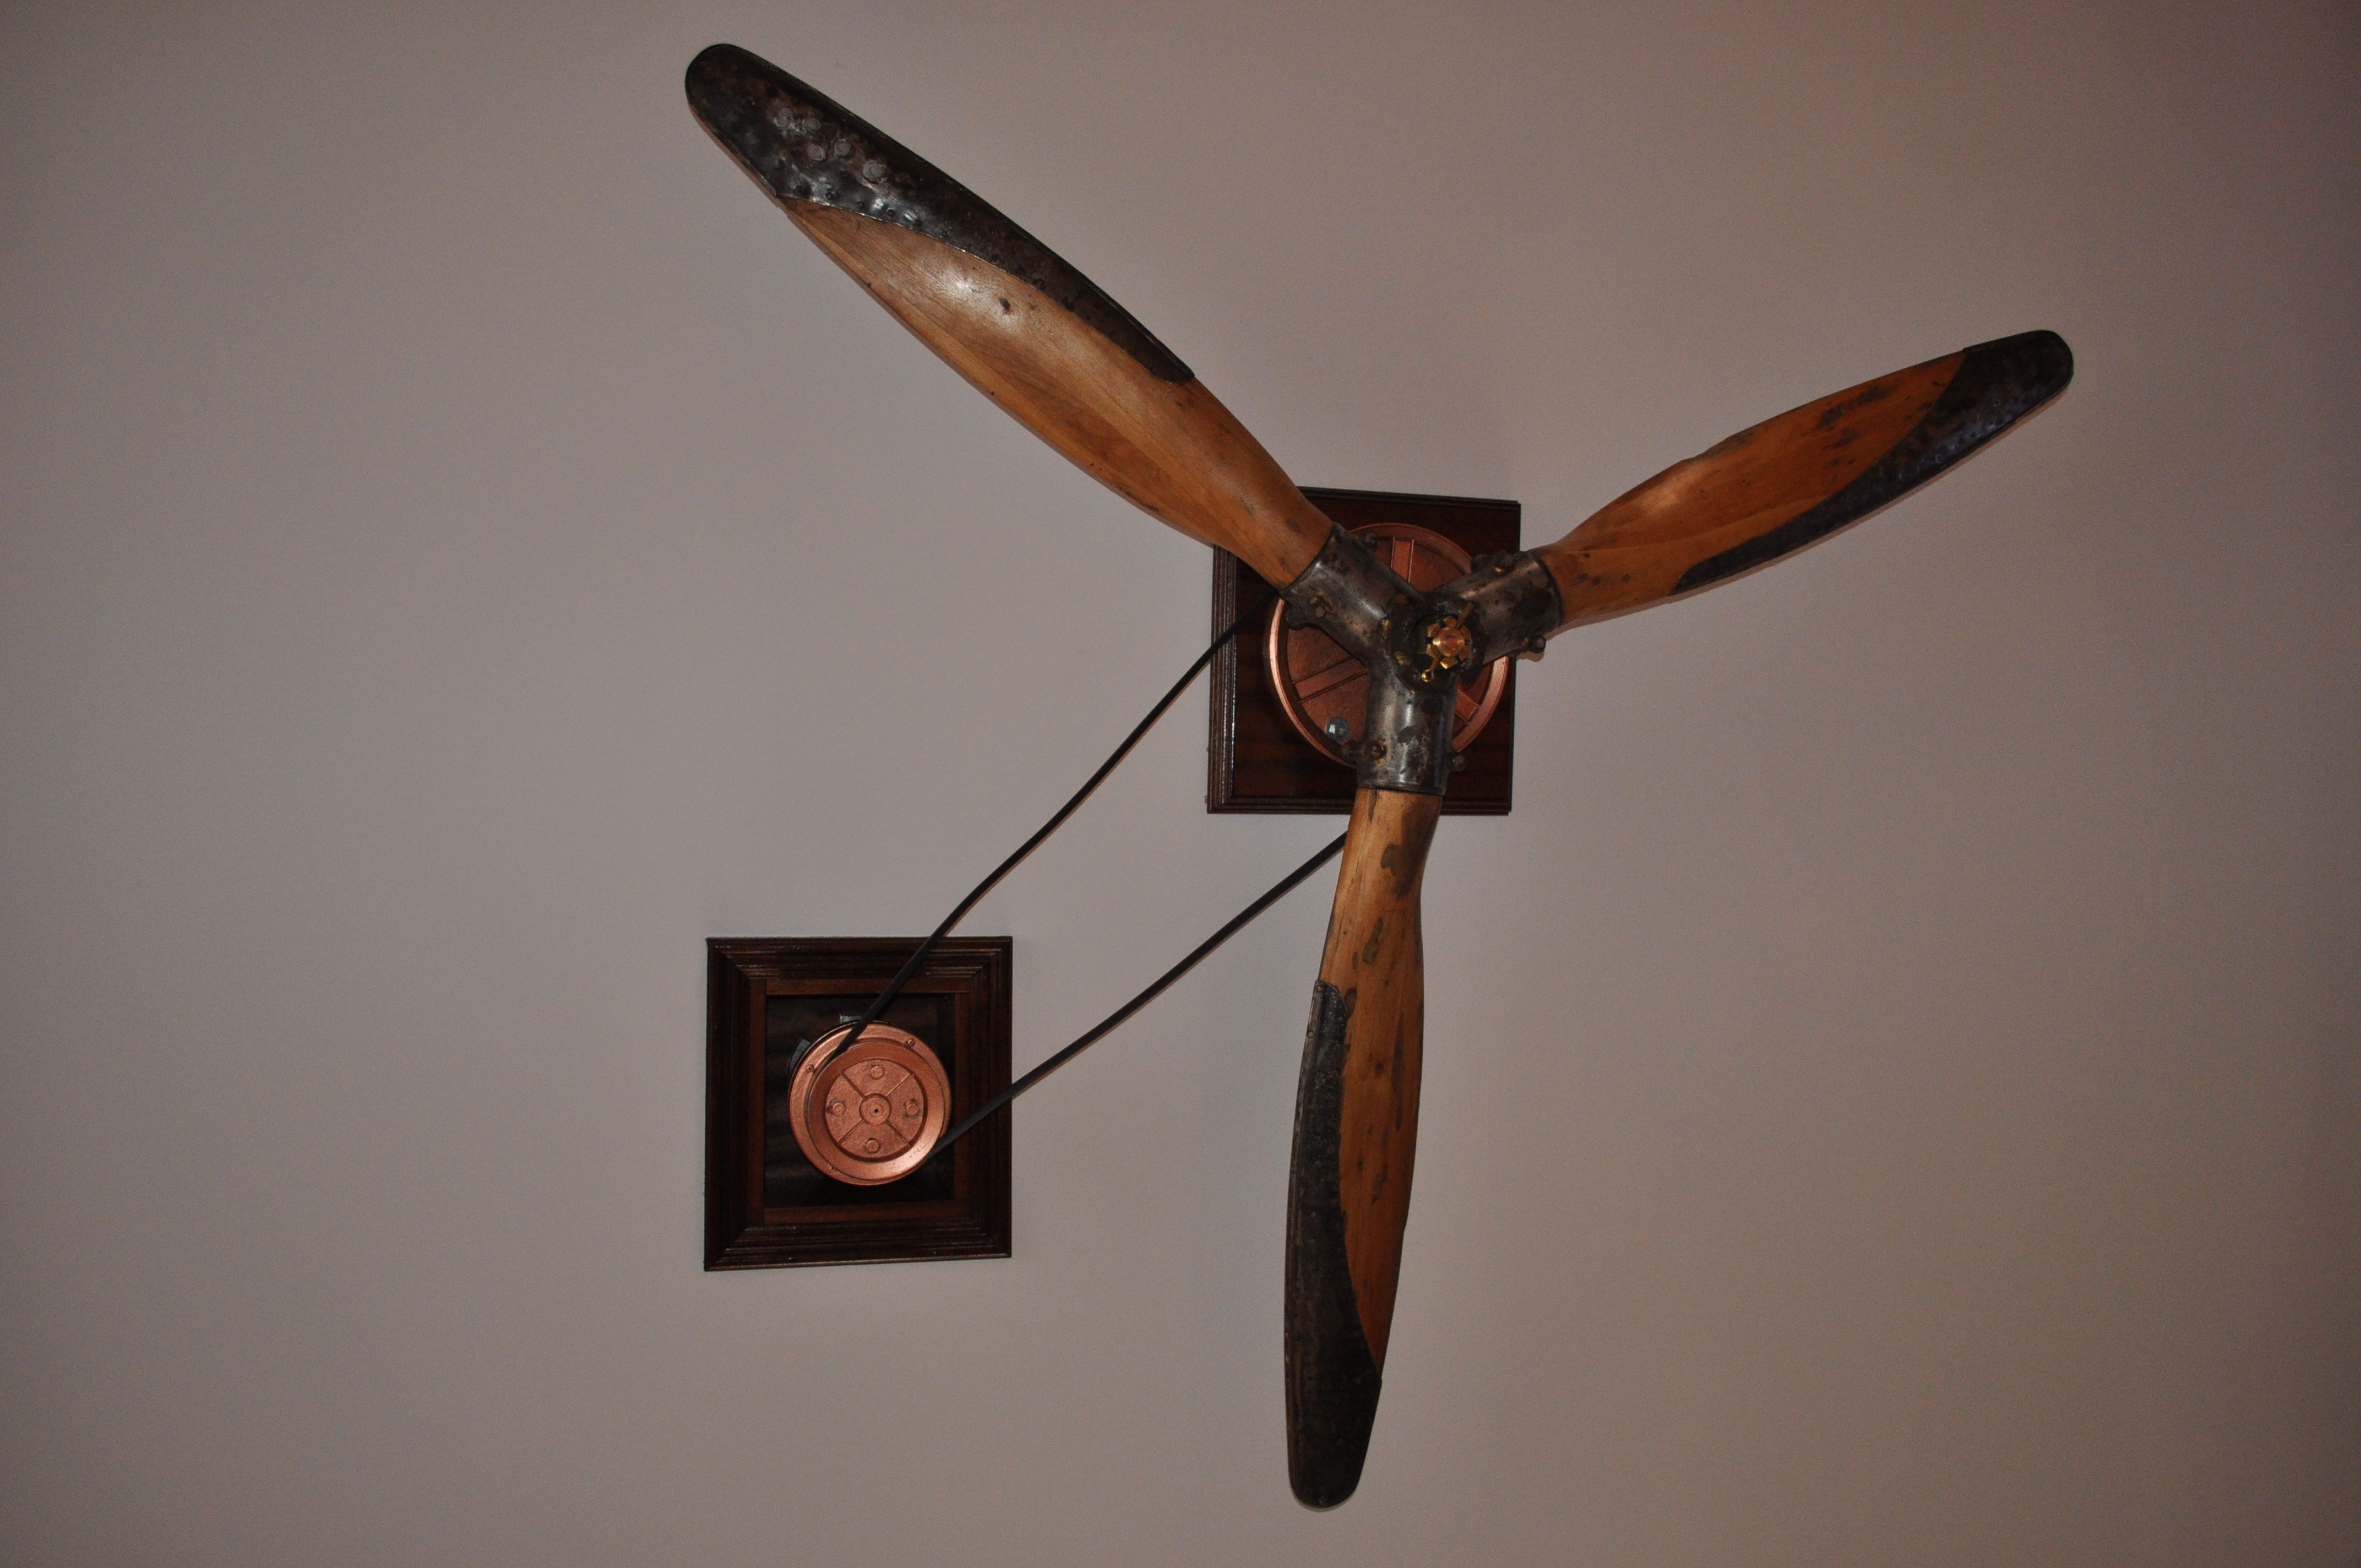 1000+ images about Ceiling Fans on Pinterest | Wooden ceiling fans ...